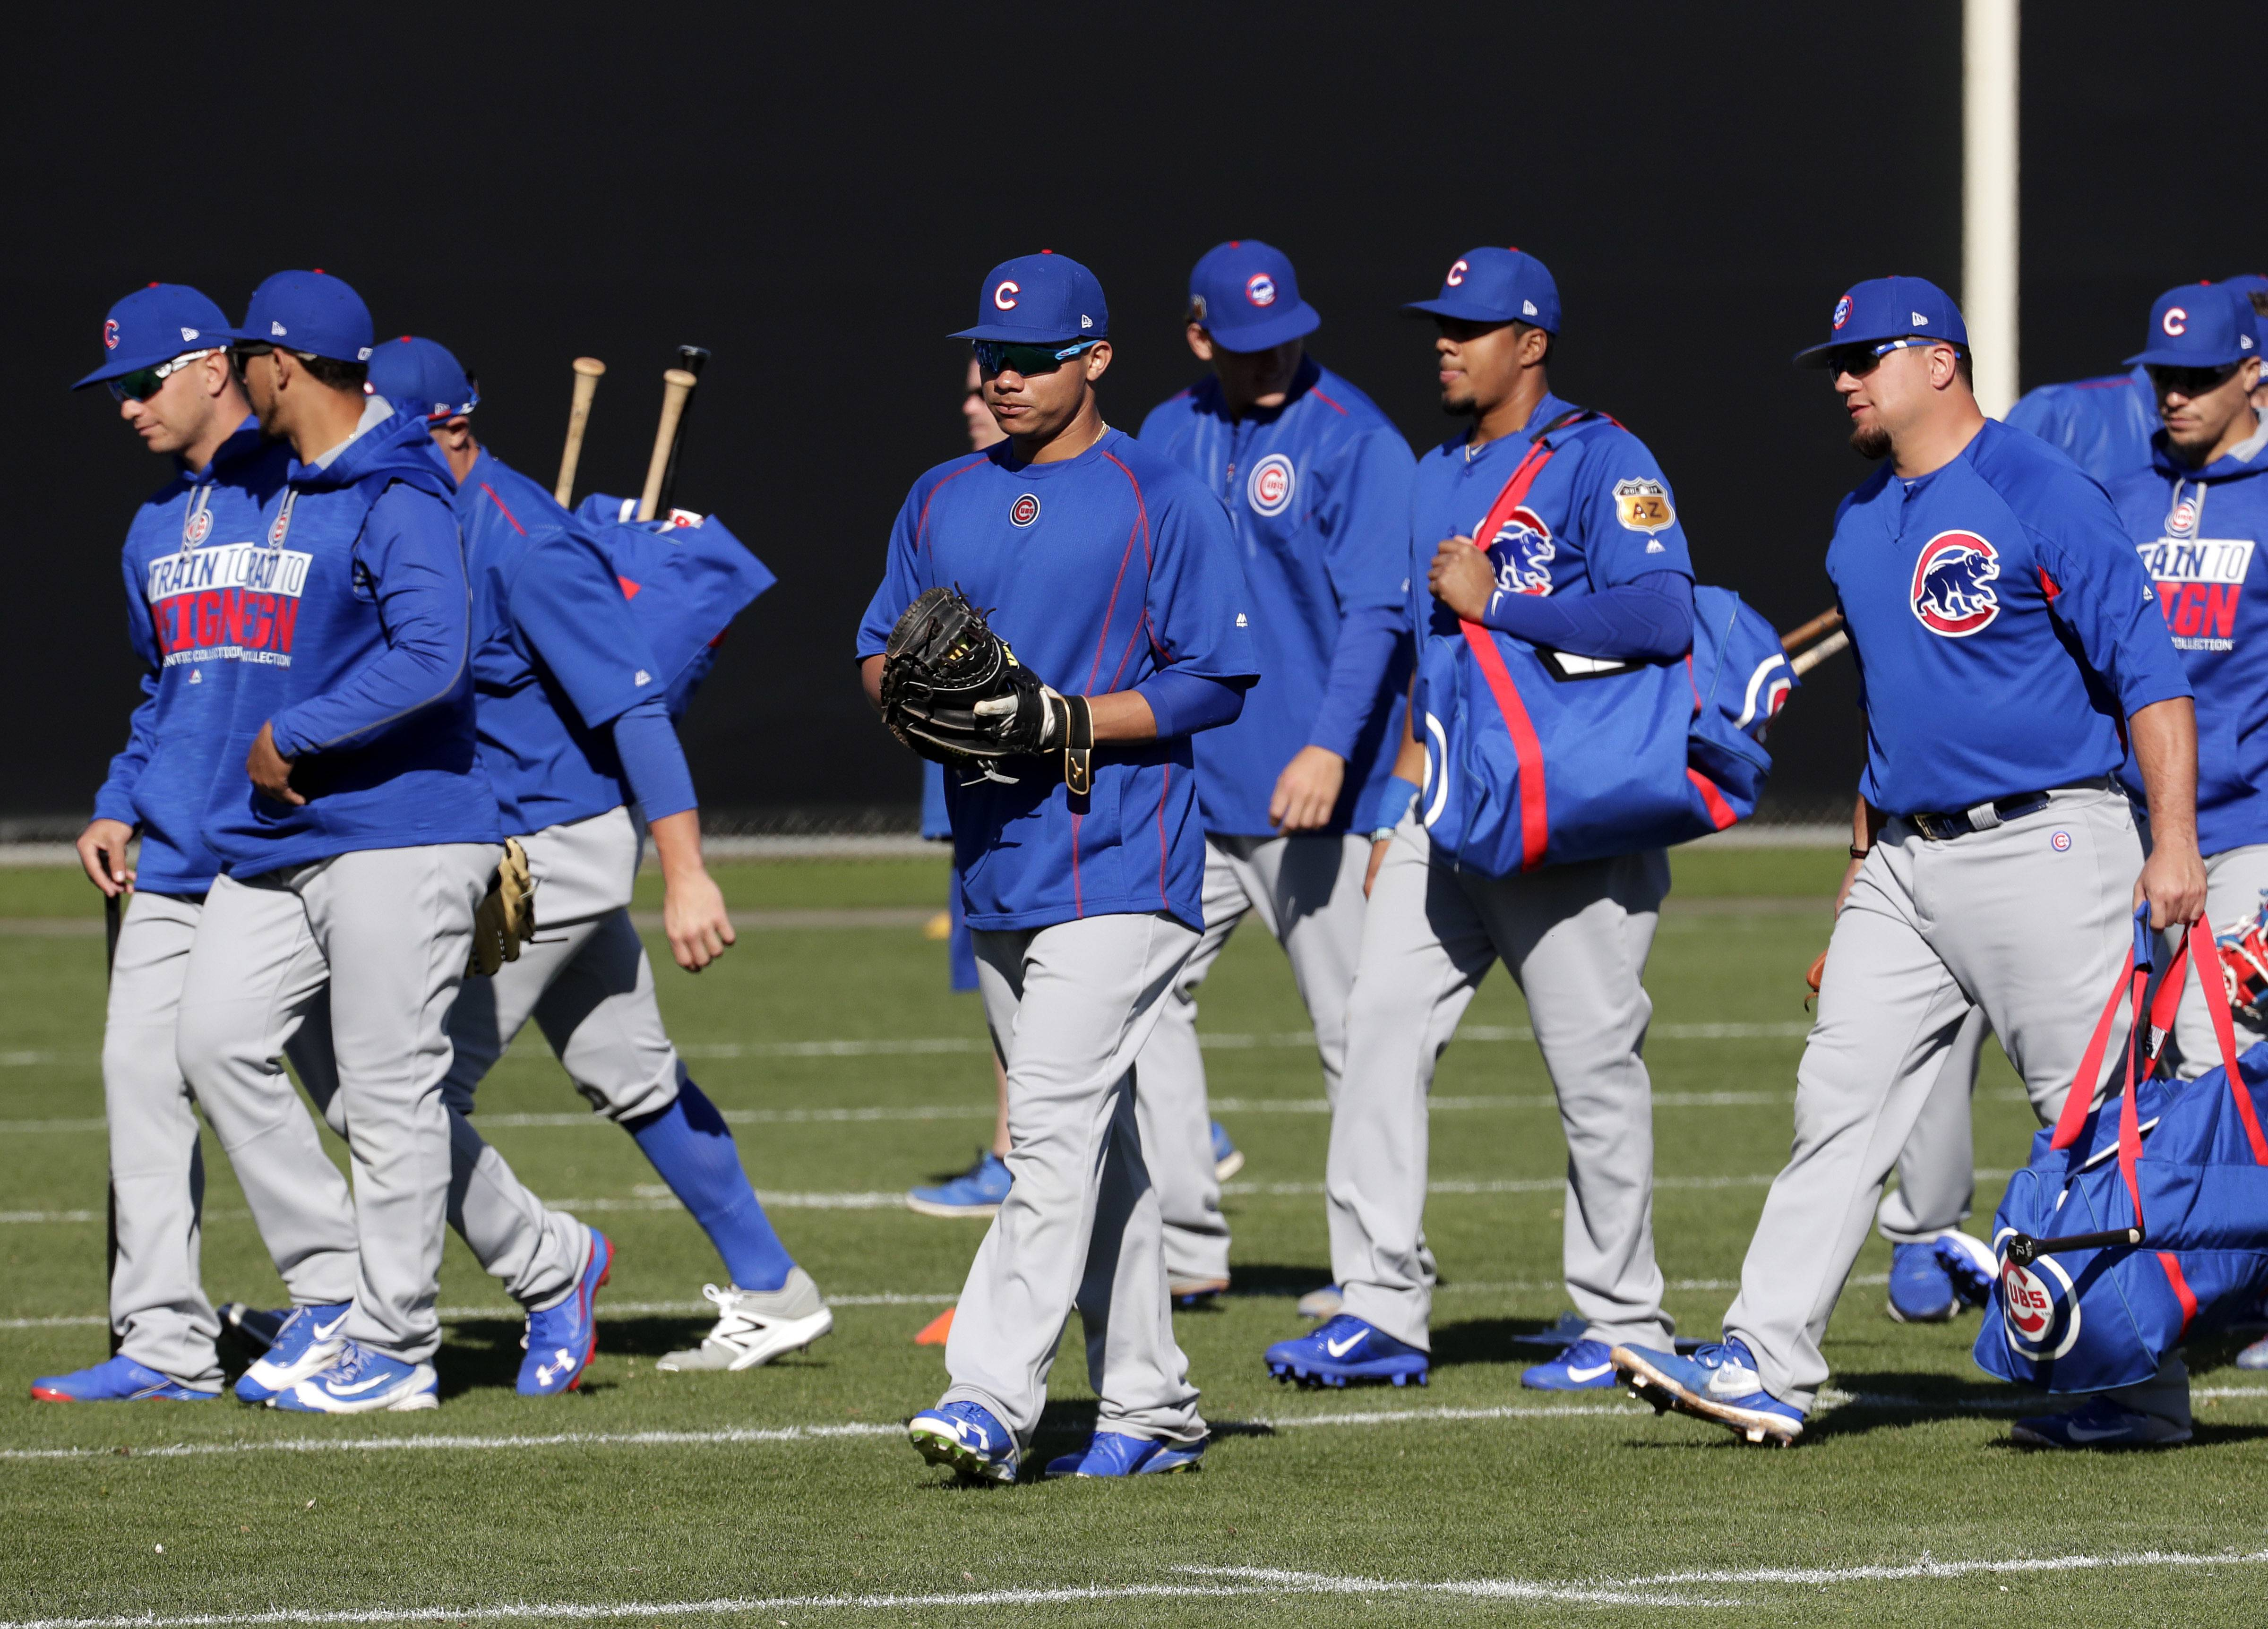 Chicago Cubs players arrive for workouts during a spring training baseball practice, Friday, Feb. 24, 2017, in Mesa, Ariz. (AP Photo/Matt York)